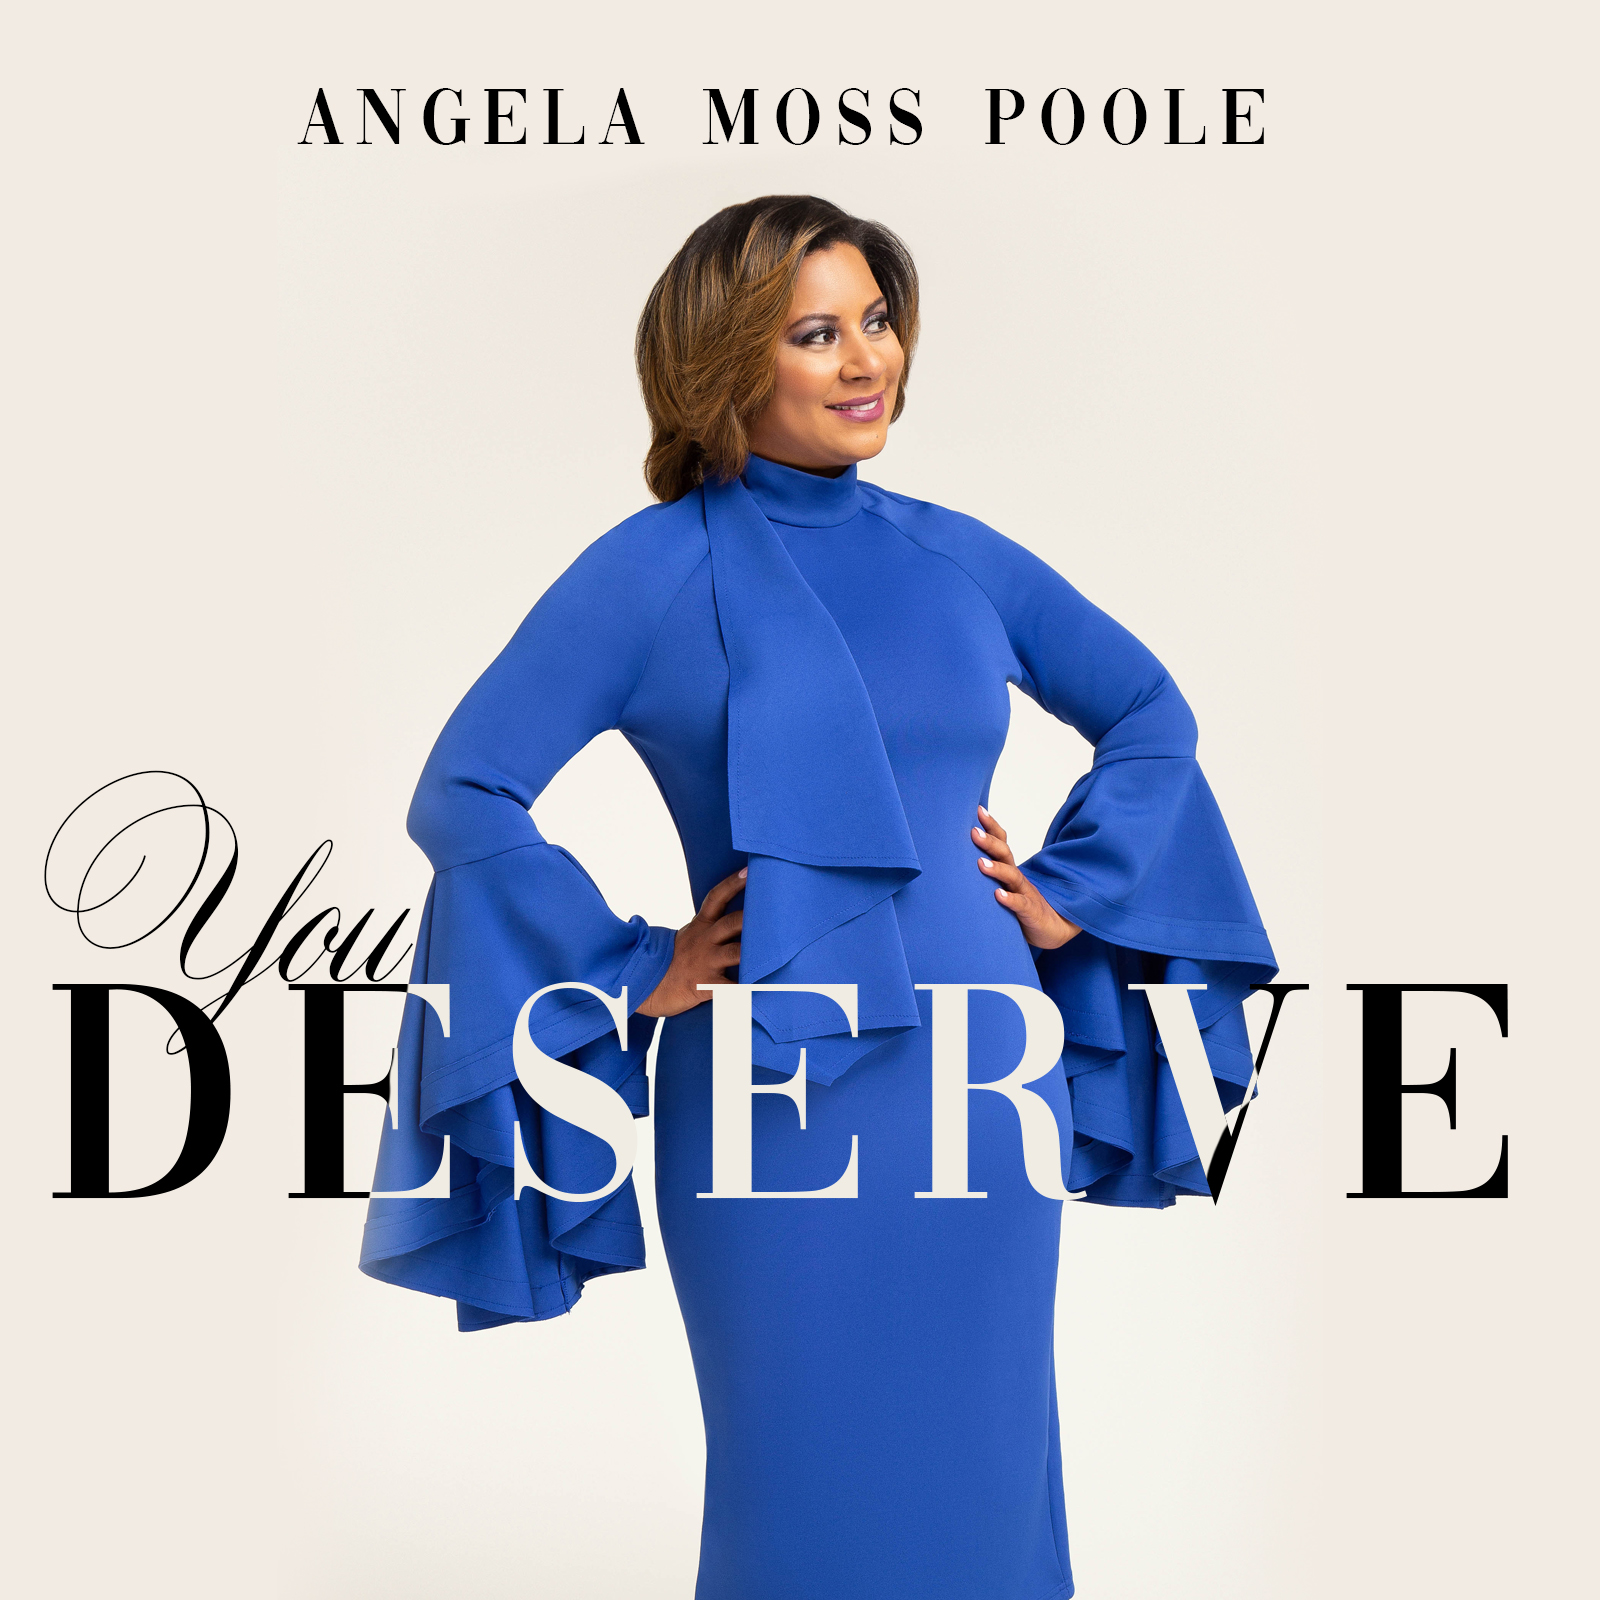 Photo of You Deserve by Angela Moss Poole